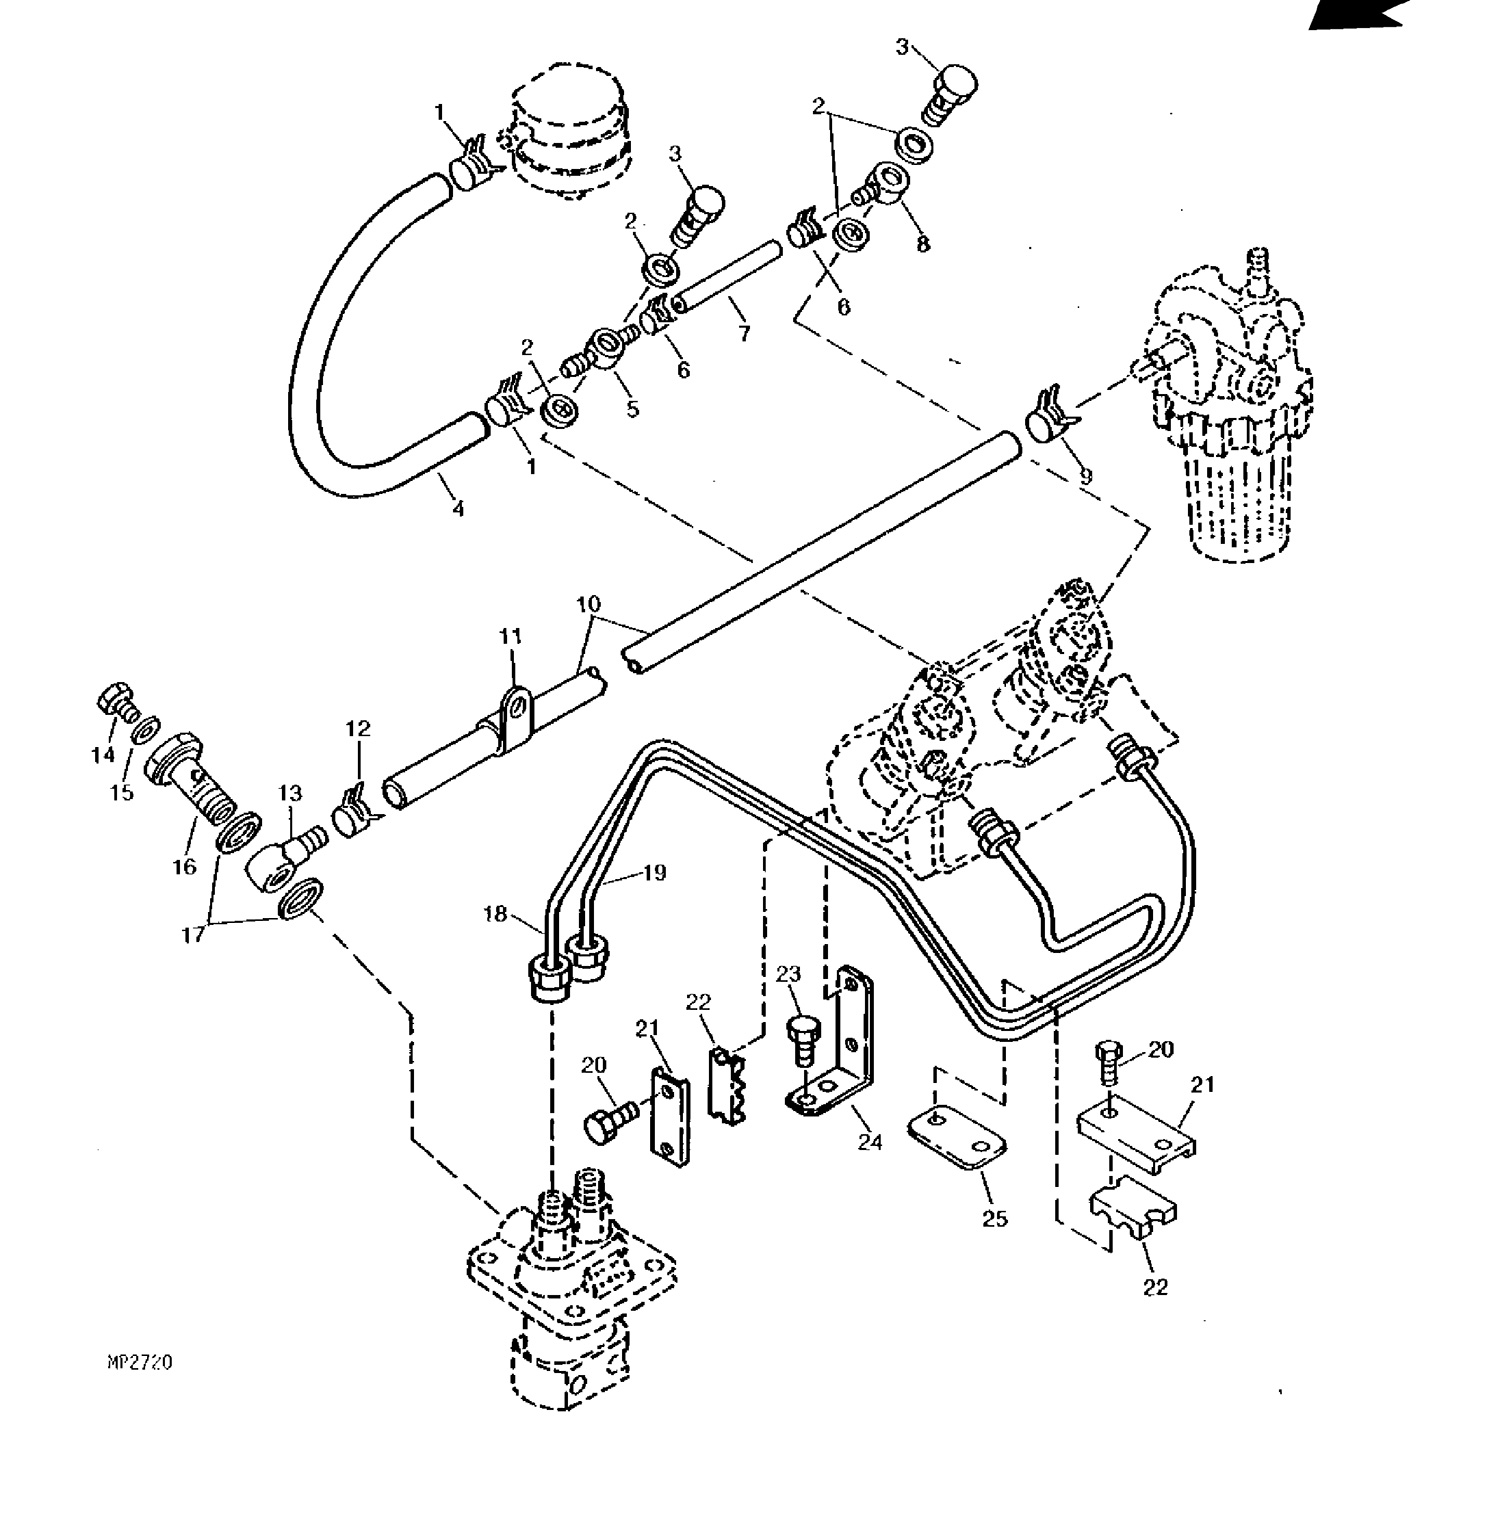 Injector Parts/Fuel Filters/Glow Plugs for John Deere ... on john deere injection pump wiring diagram, john deere ignition wiring diagram, john deere battery wiring diagram, john deere temperature sensor wiring diagram, john deere generator wiring diagram, john deere alternator wiring diagram,